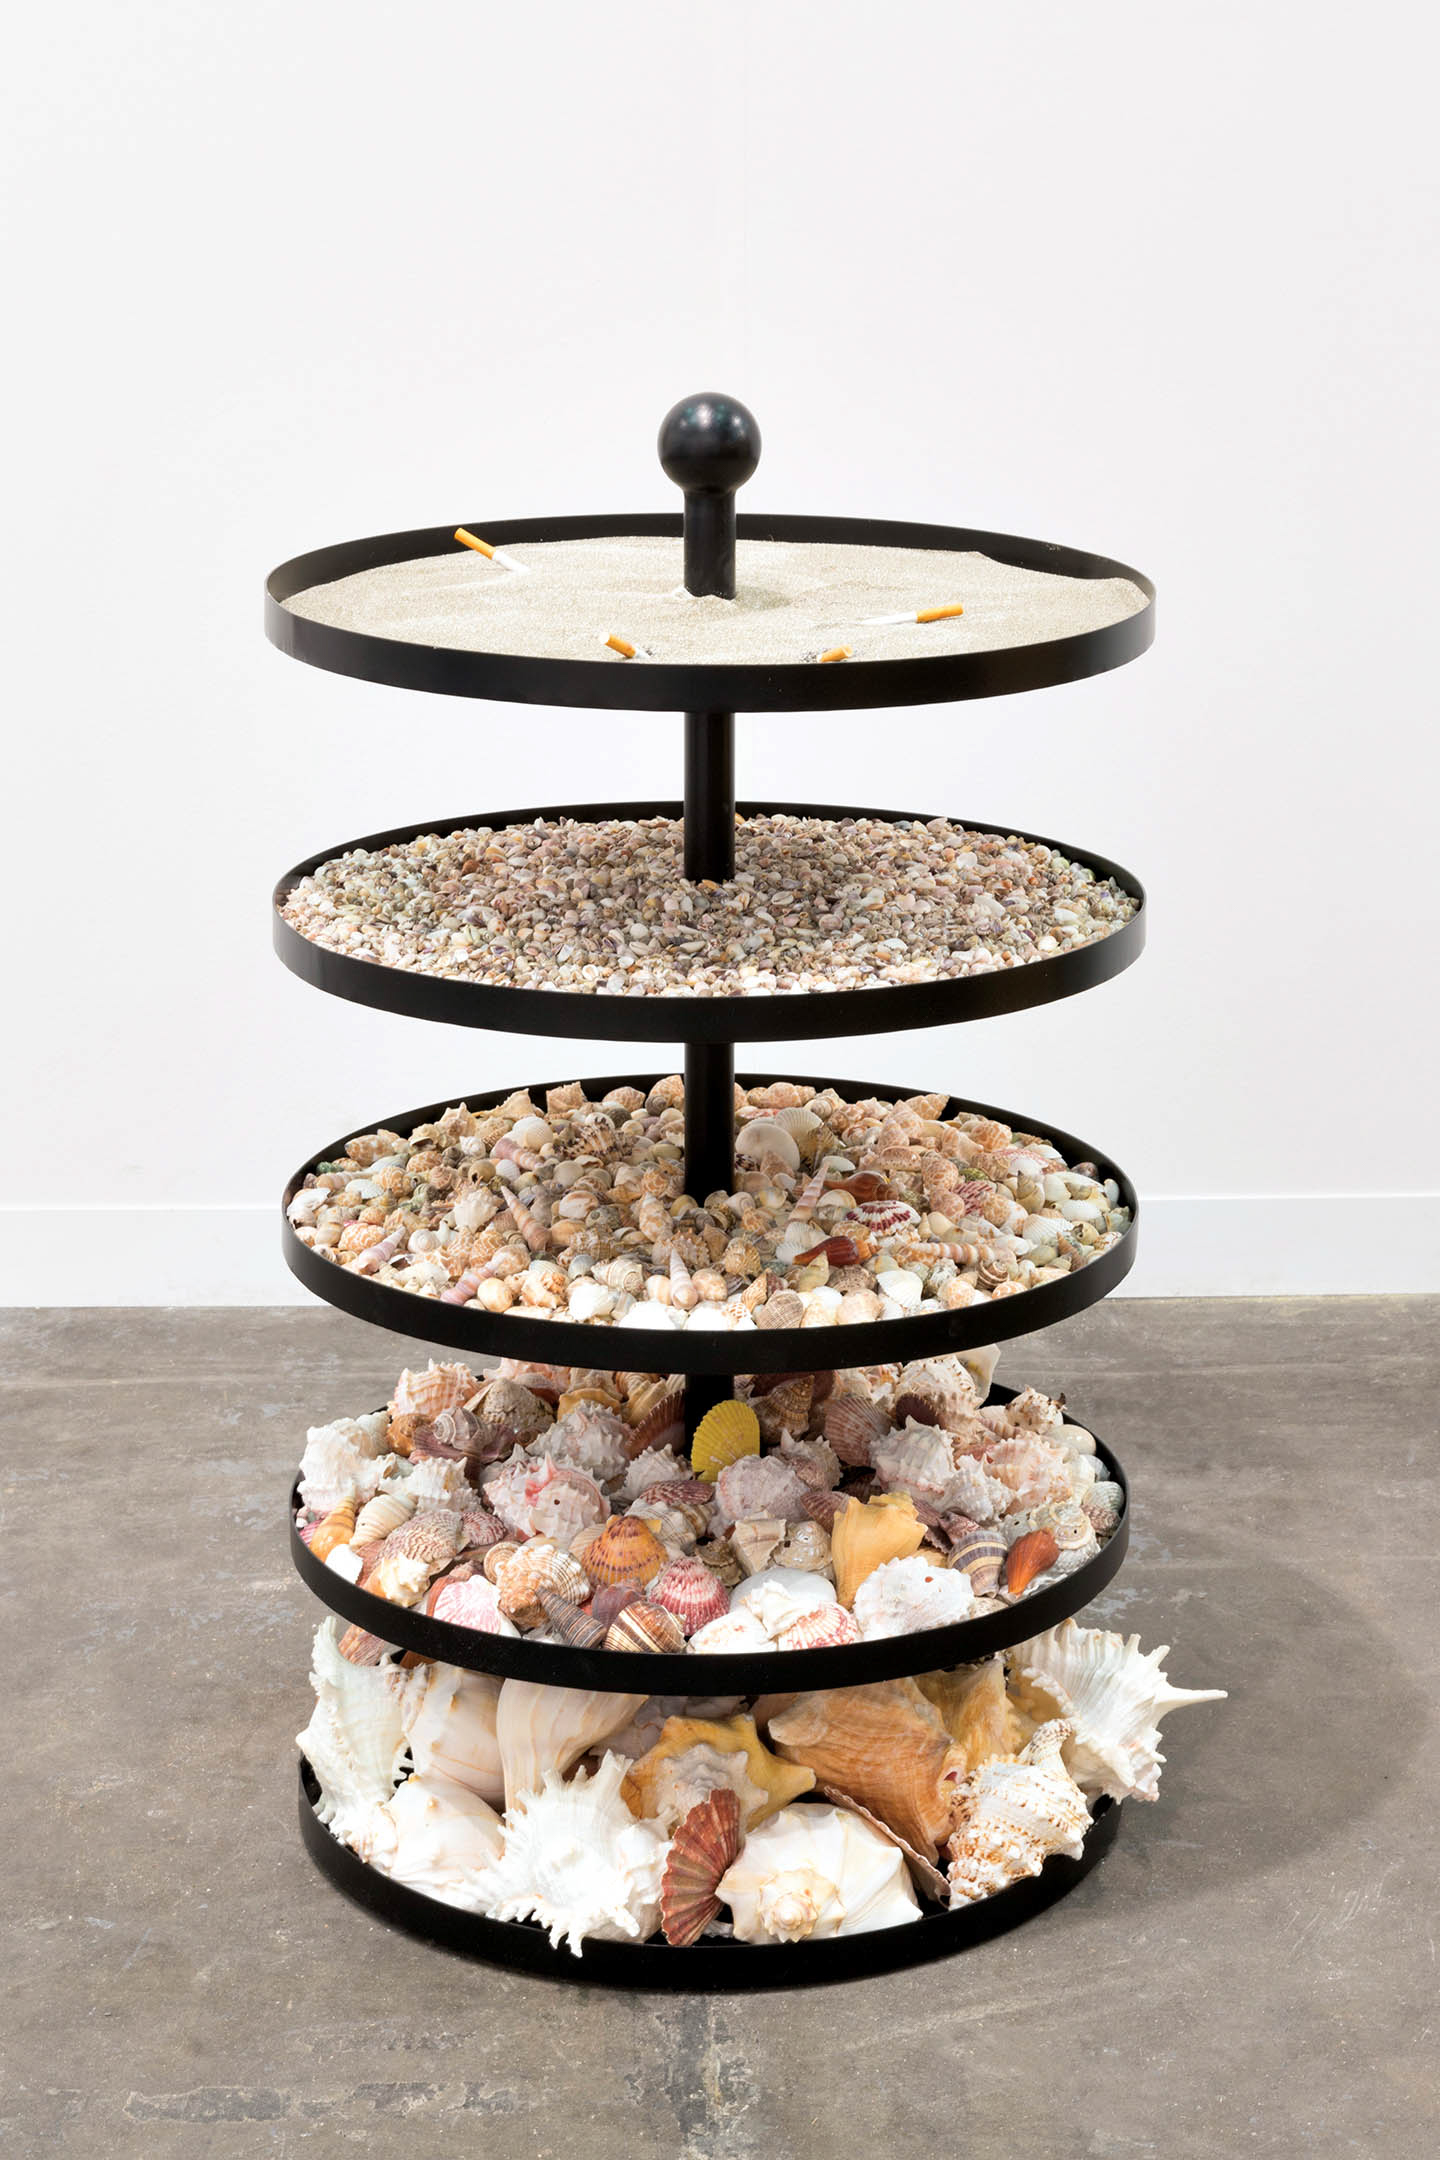 5-tired stand full of shells